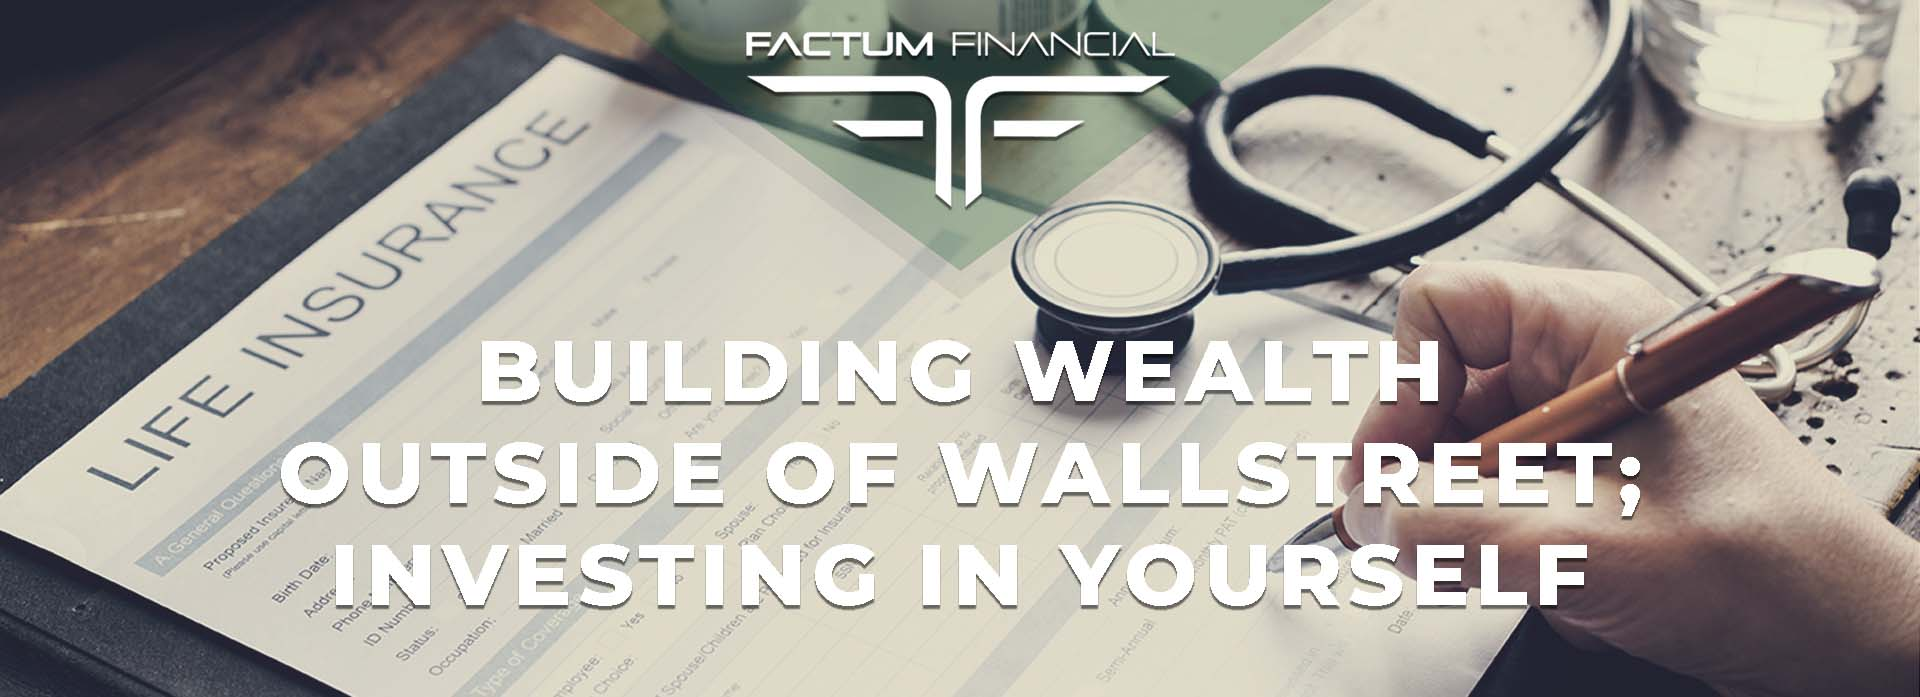 Building Wealth Outside Of Wall Street: Investing In Yourself